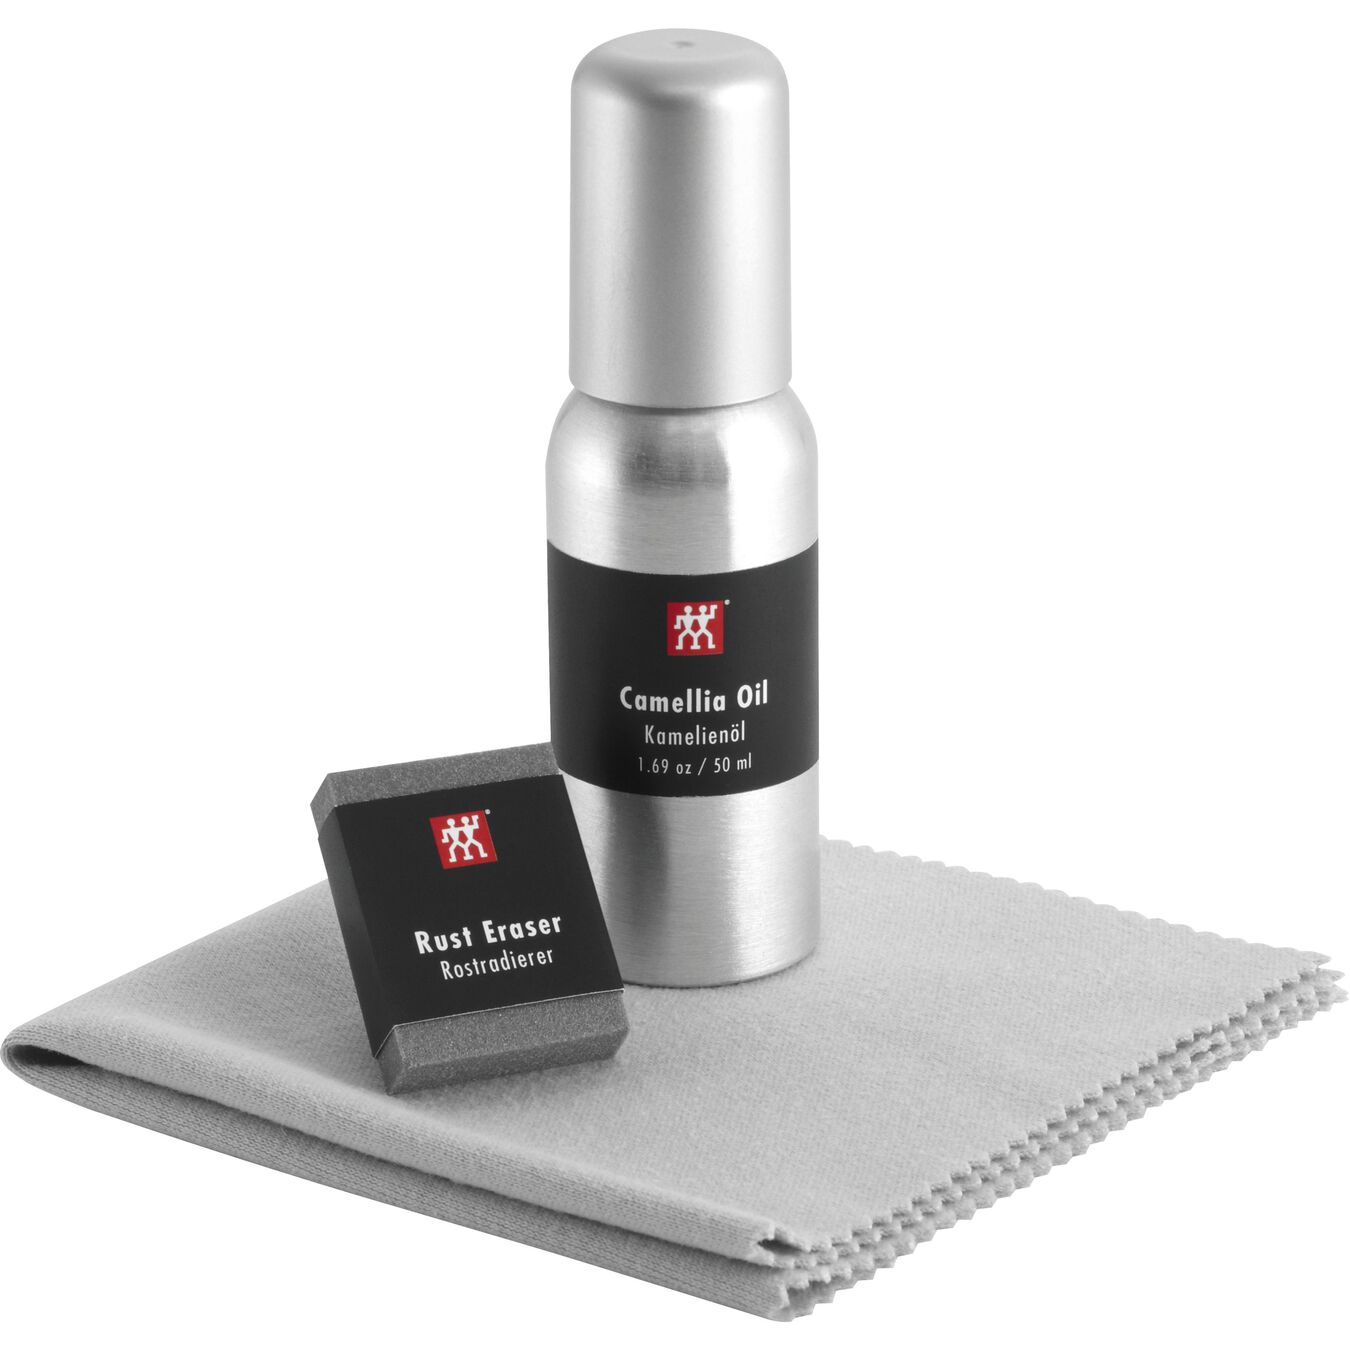 Carbon Steel Use & Care Kit,,large 1